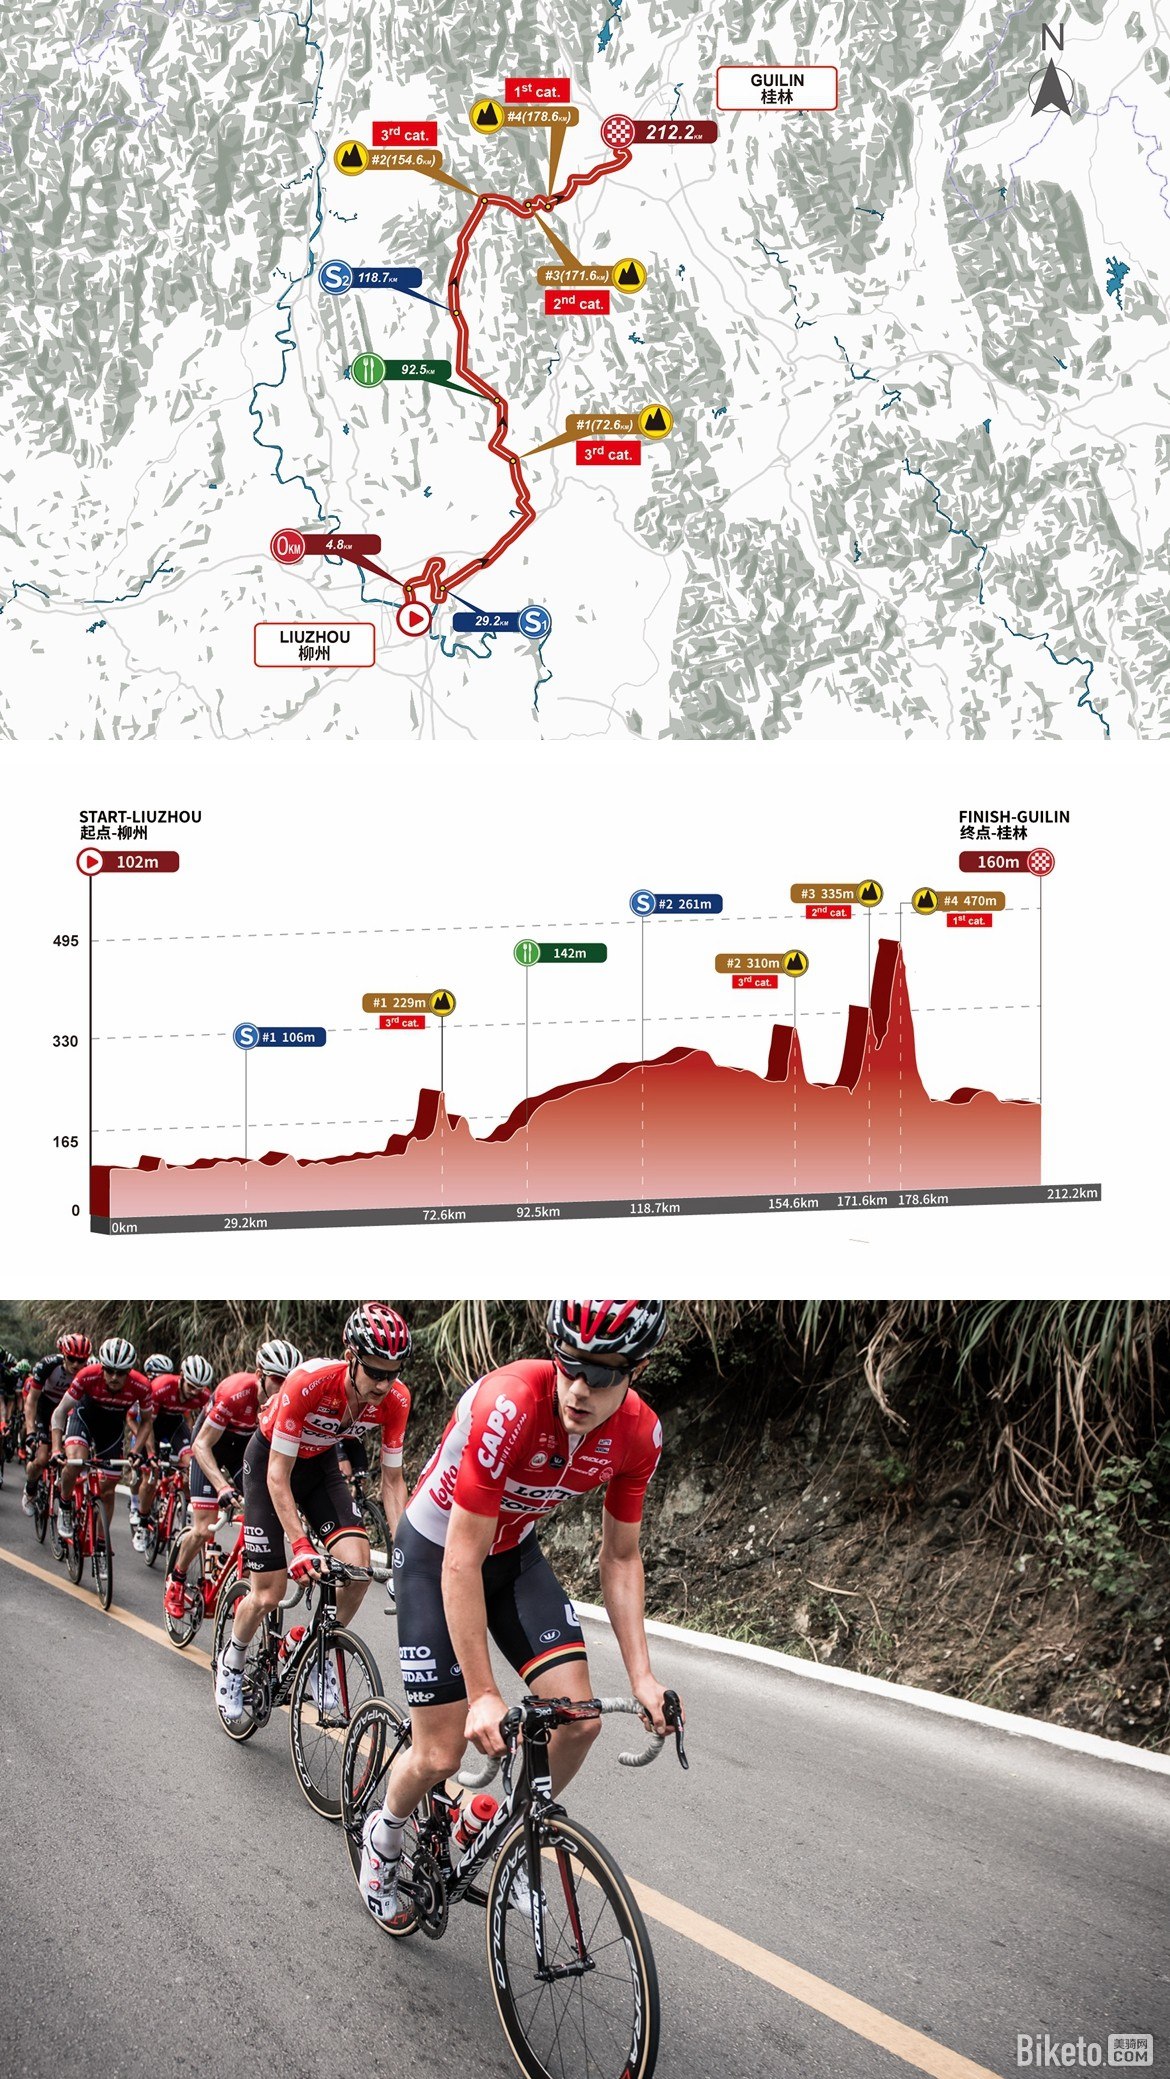 2018 tour of guangxi stage 5